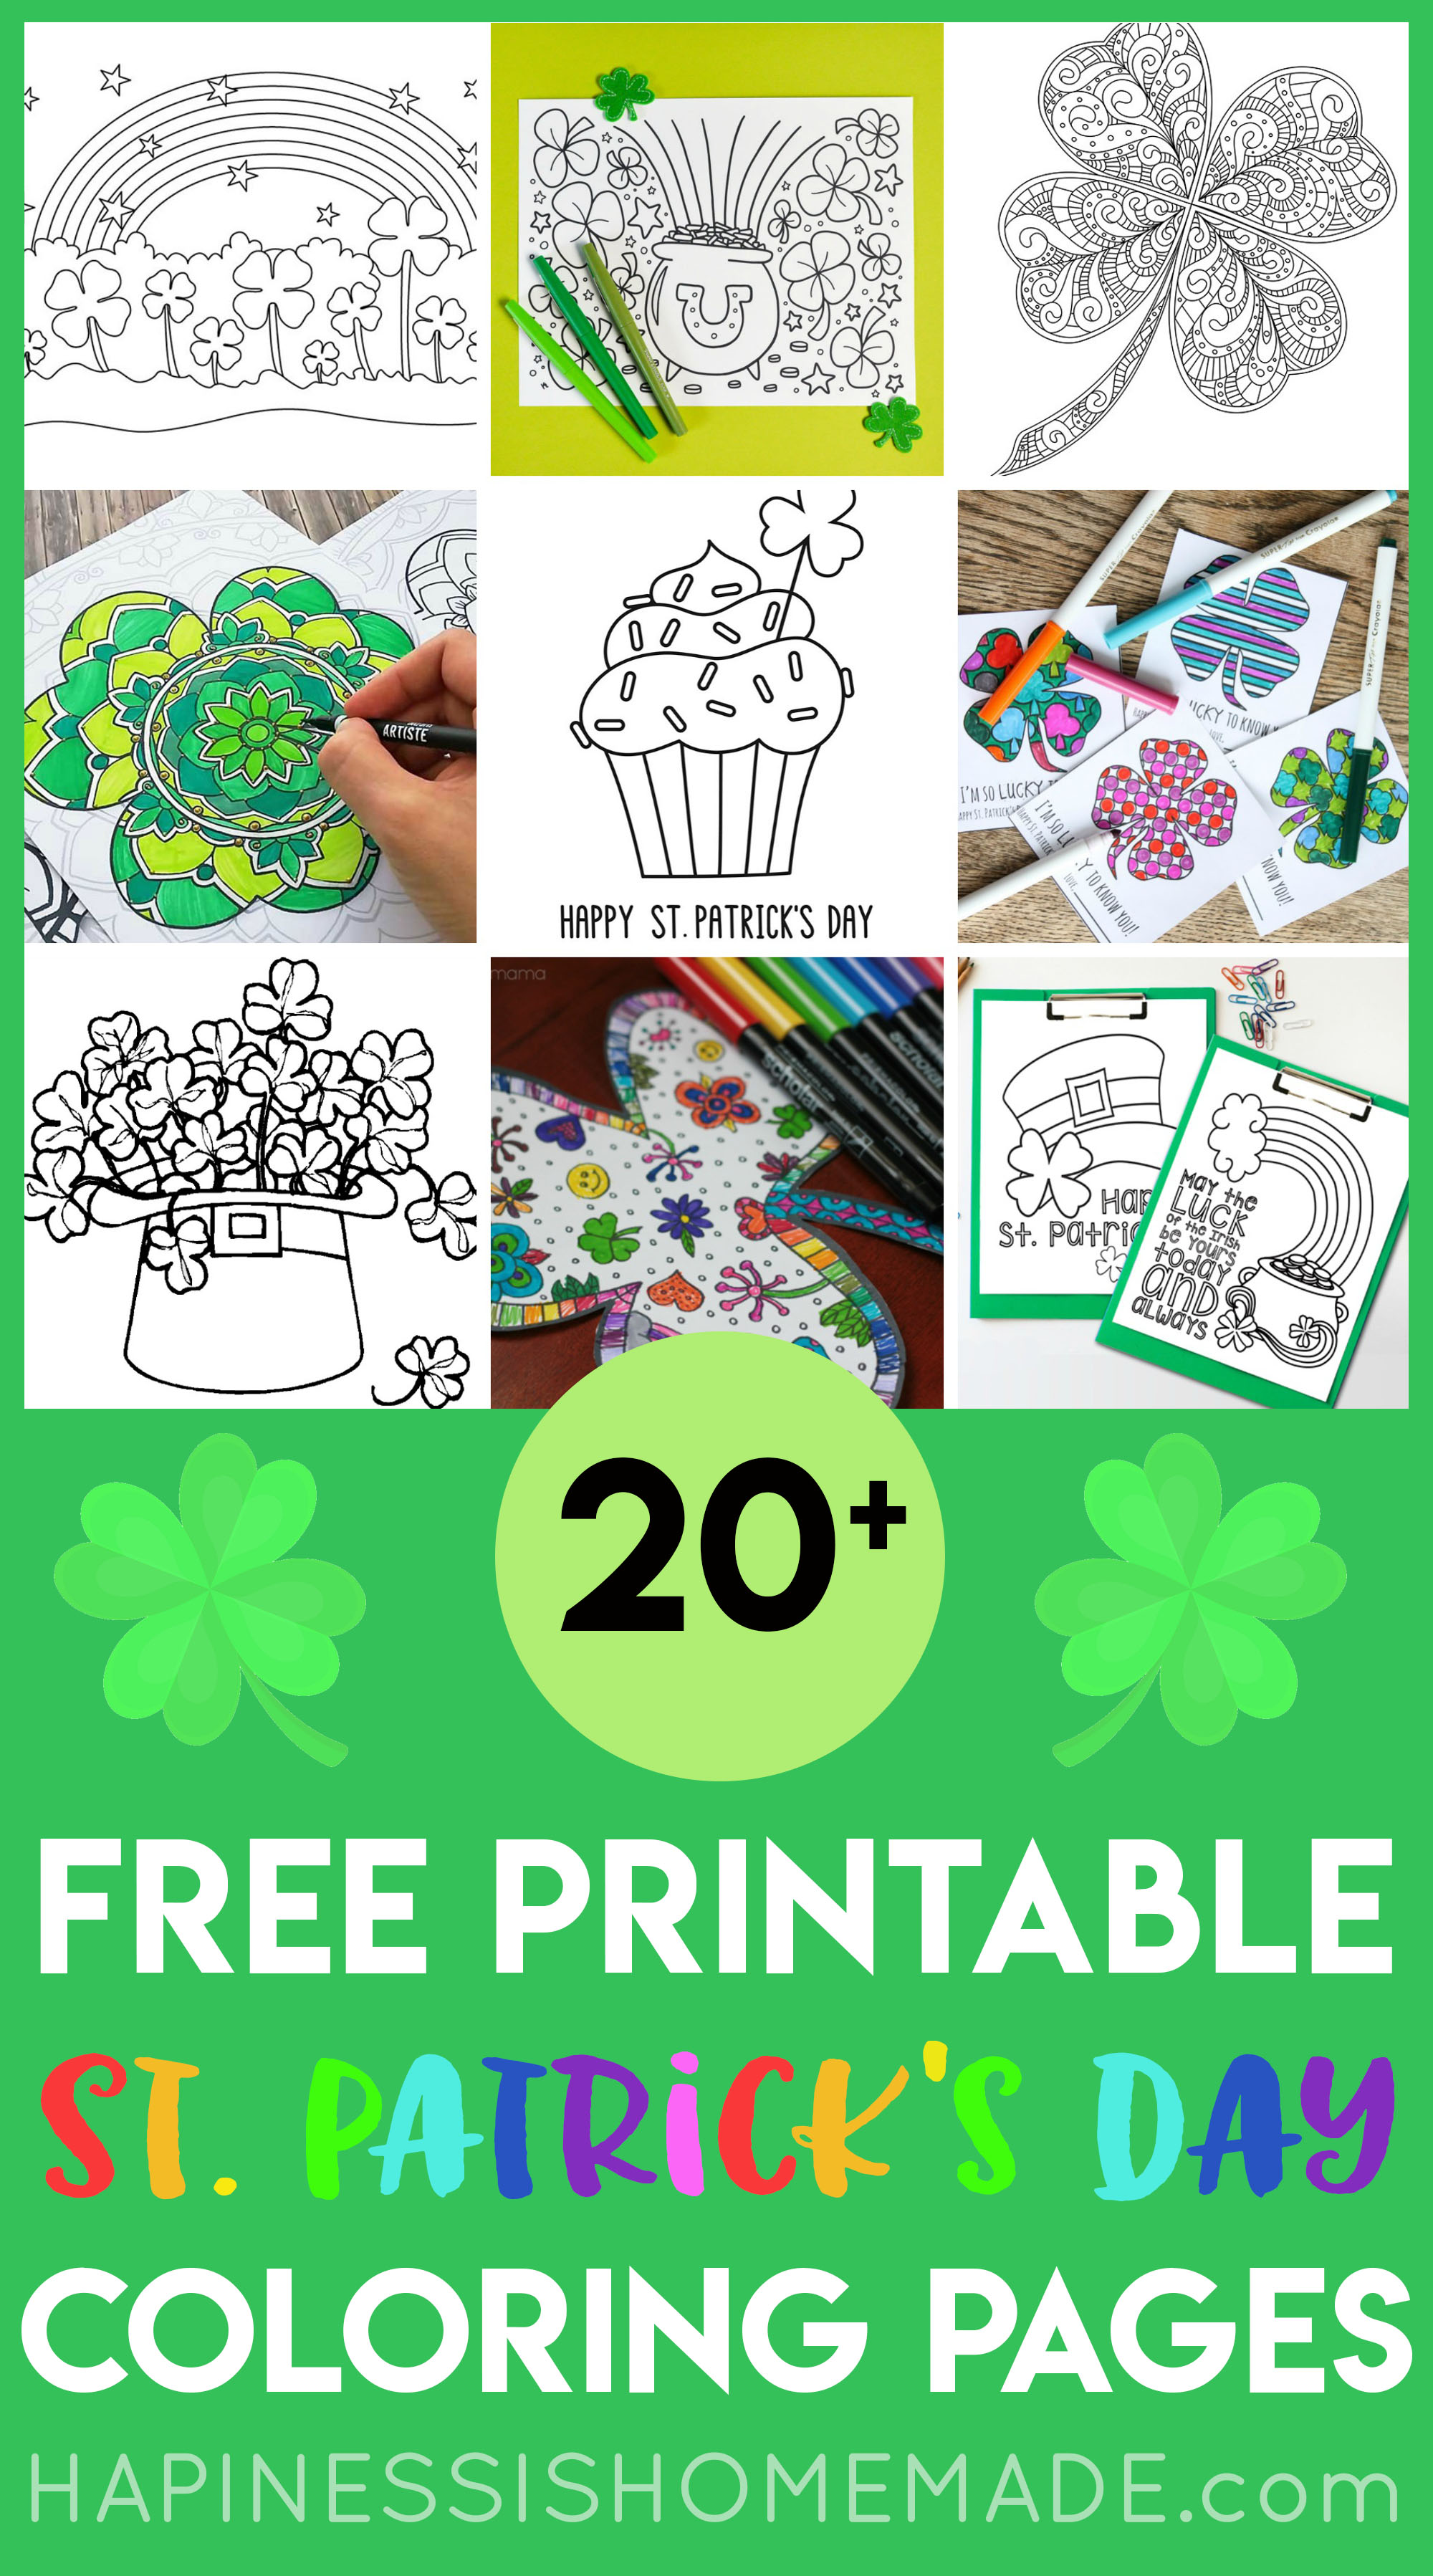 photo relating to Free Printable St Patrick Day Coloring Pages named Cost-free St. Patricks Working day Coloring Internet pages - Pleasure is Handmade